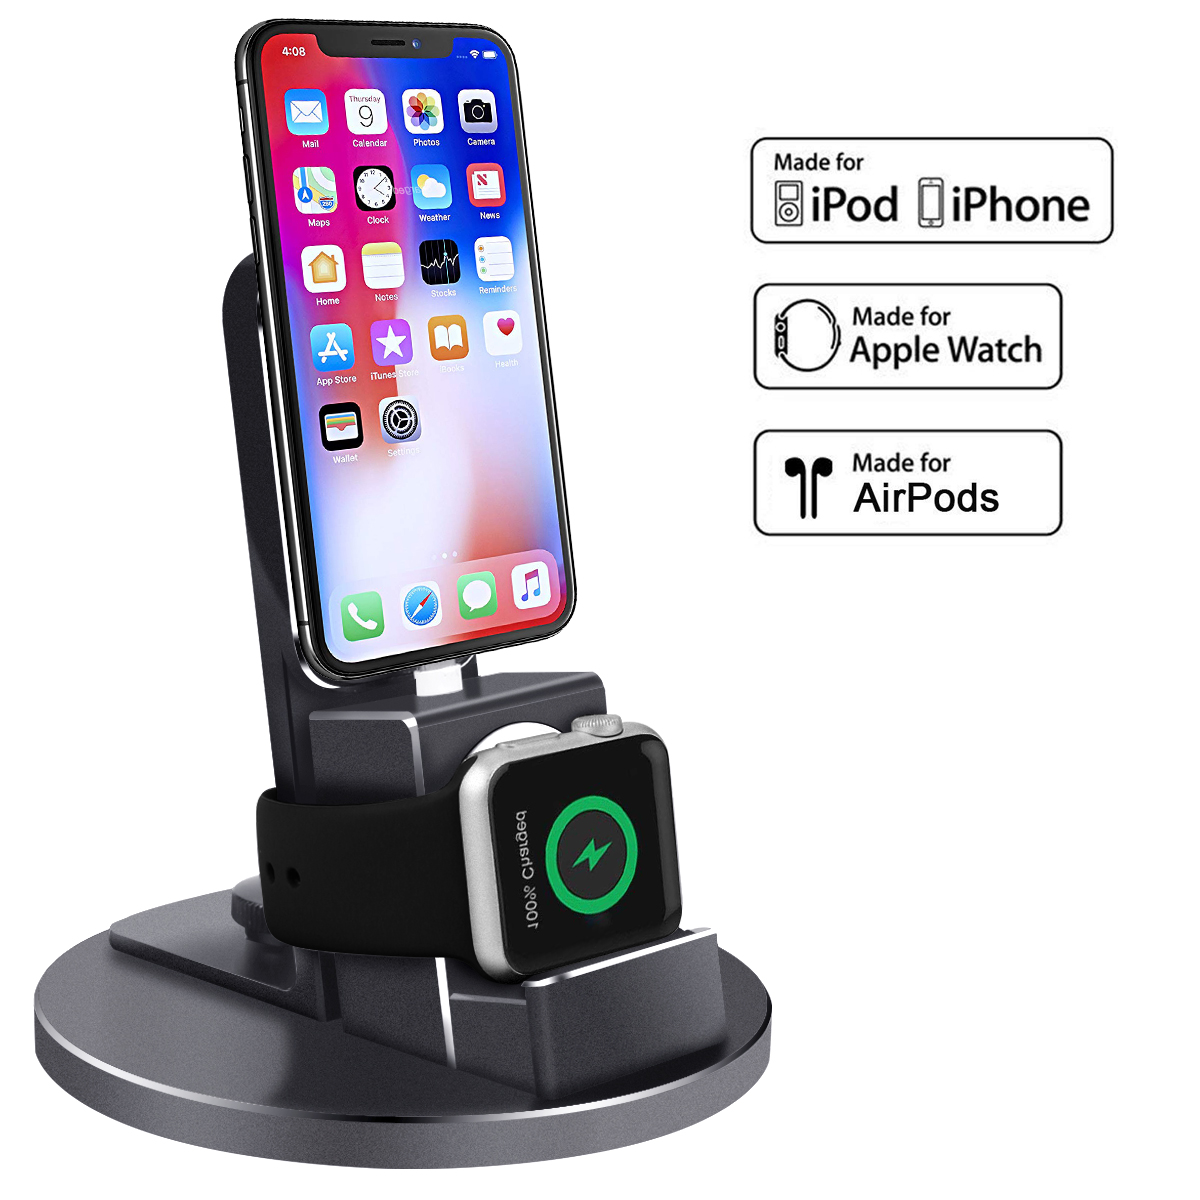 For iPhone iWatch AirPods iPod Multi Function Charging Stand 3 In 1 Metal Texture Desktop Phone charger Holder For xiaomi huawei